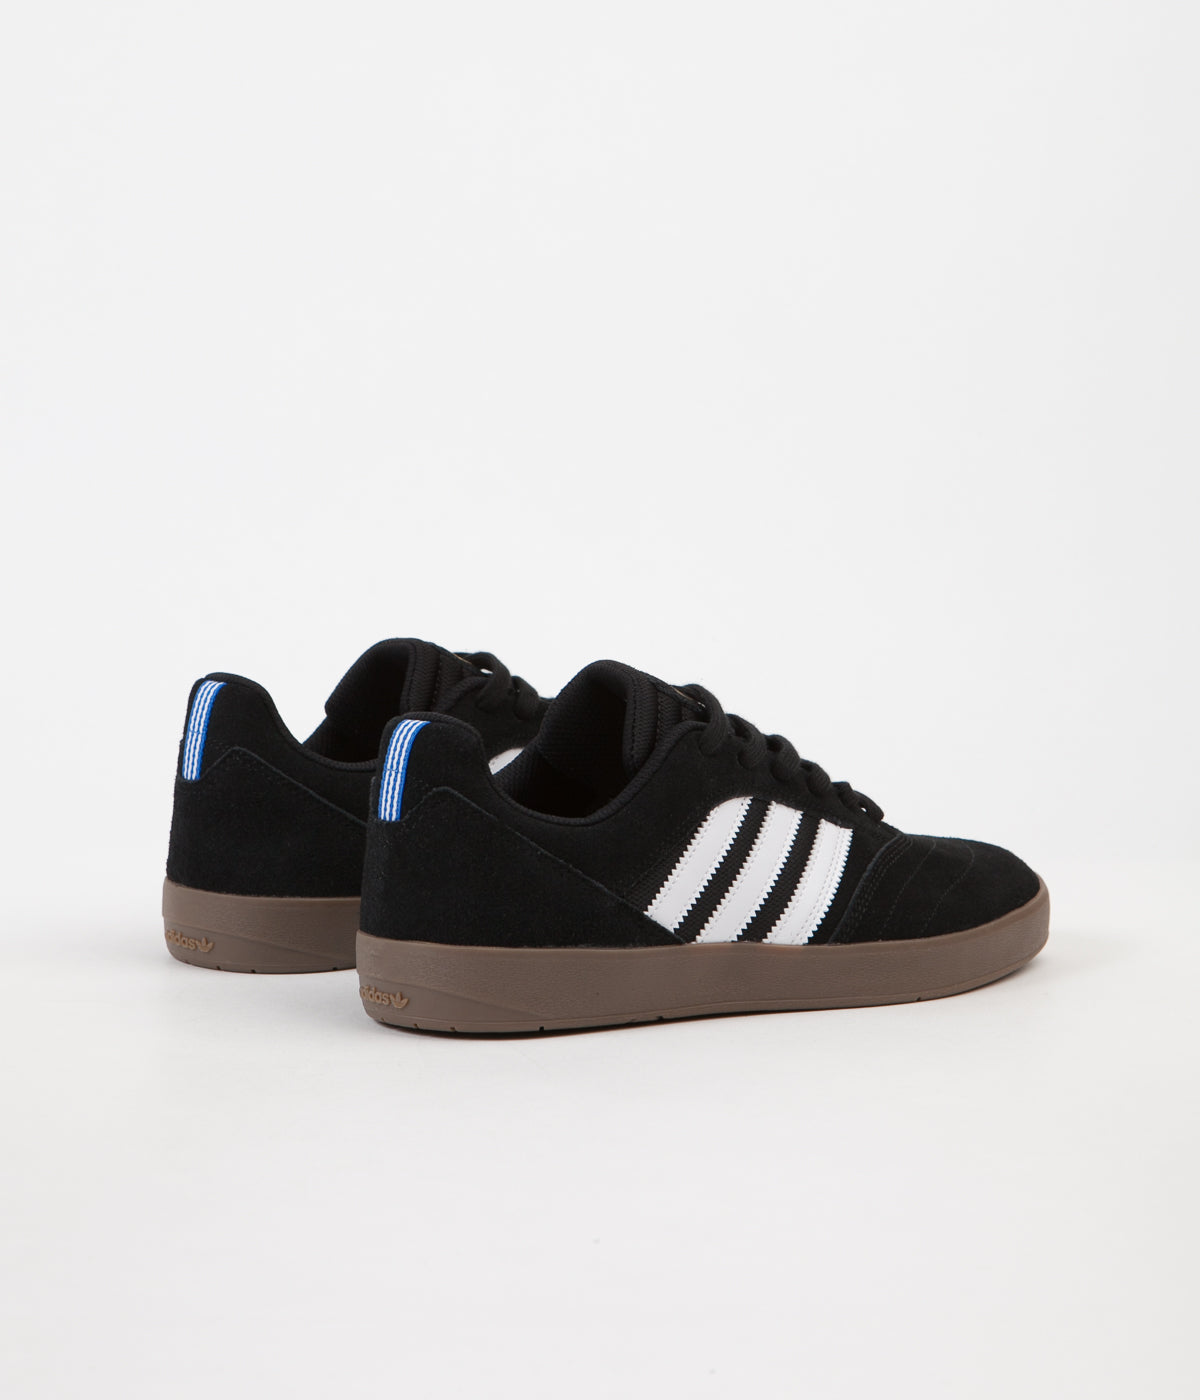 96288b34f9d ... Adidas Suciu Adv II Shoes - Core Black   White   Gum5 ...